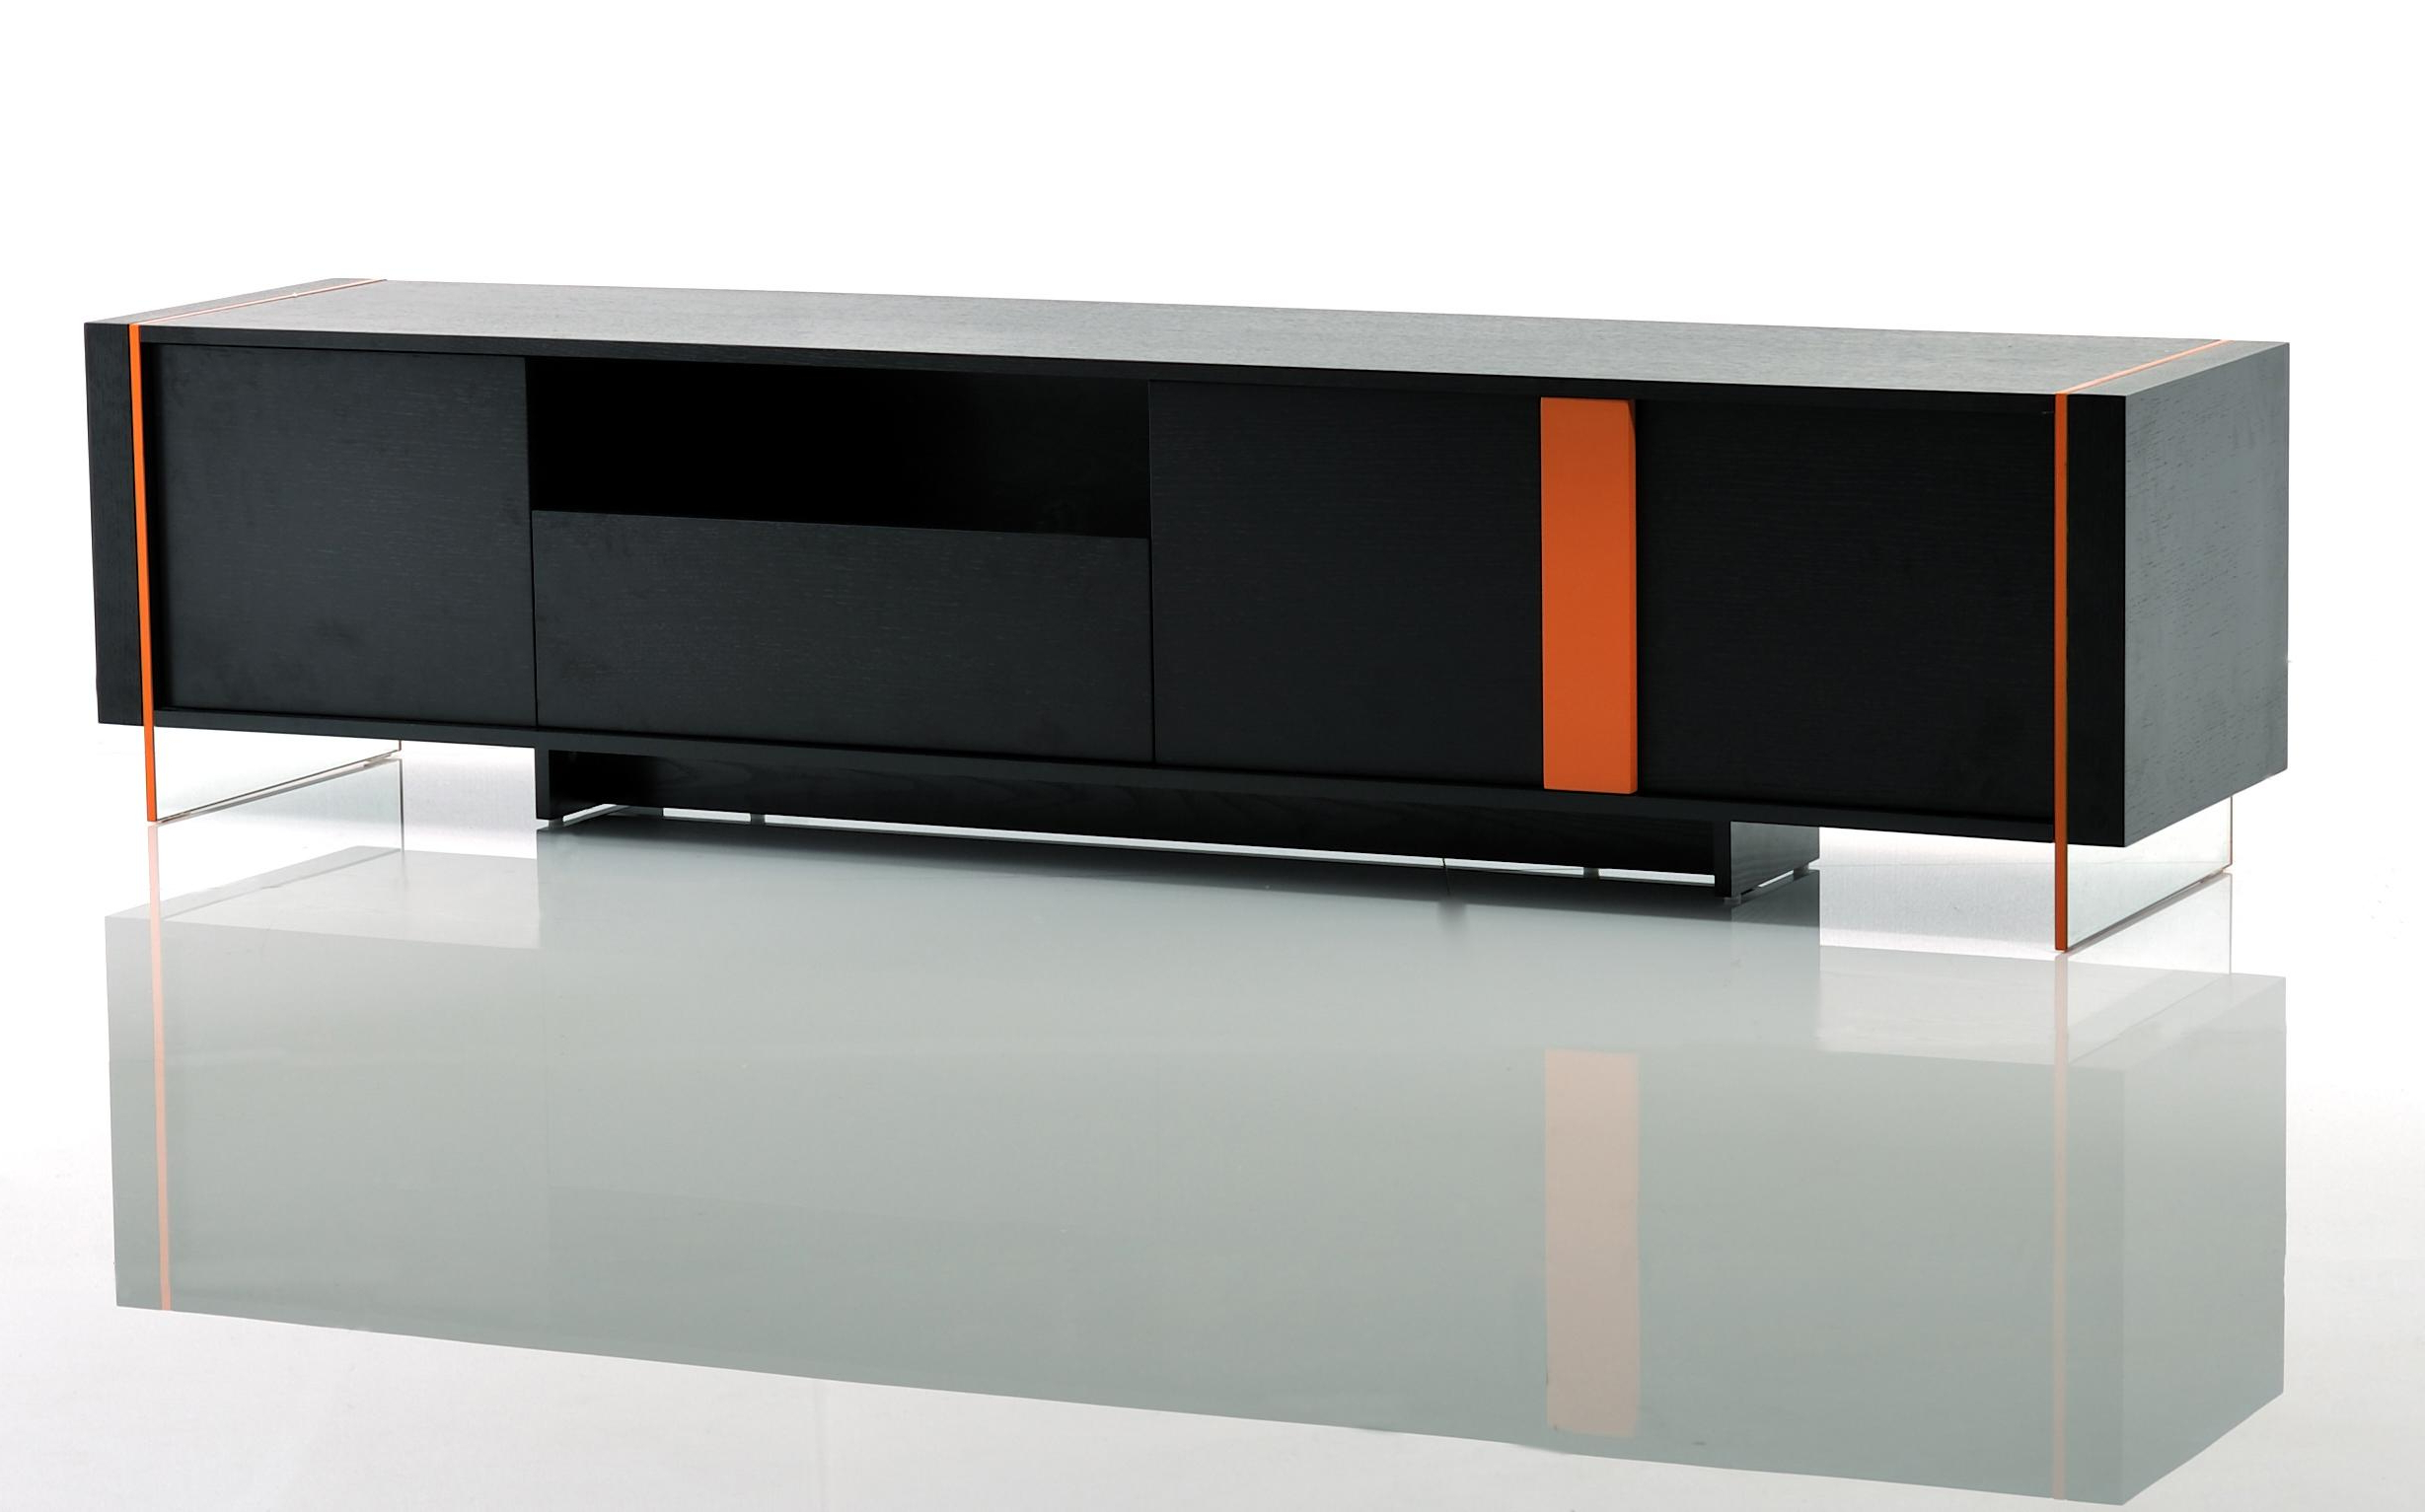 Contemporary Tv Cabinets For Flat Screens Pertaining To Well Known Tv Stands For Flat Screens Modern Cabinet Designs Living Room White (View 10 of 20)